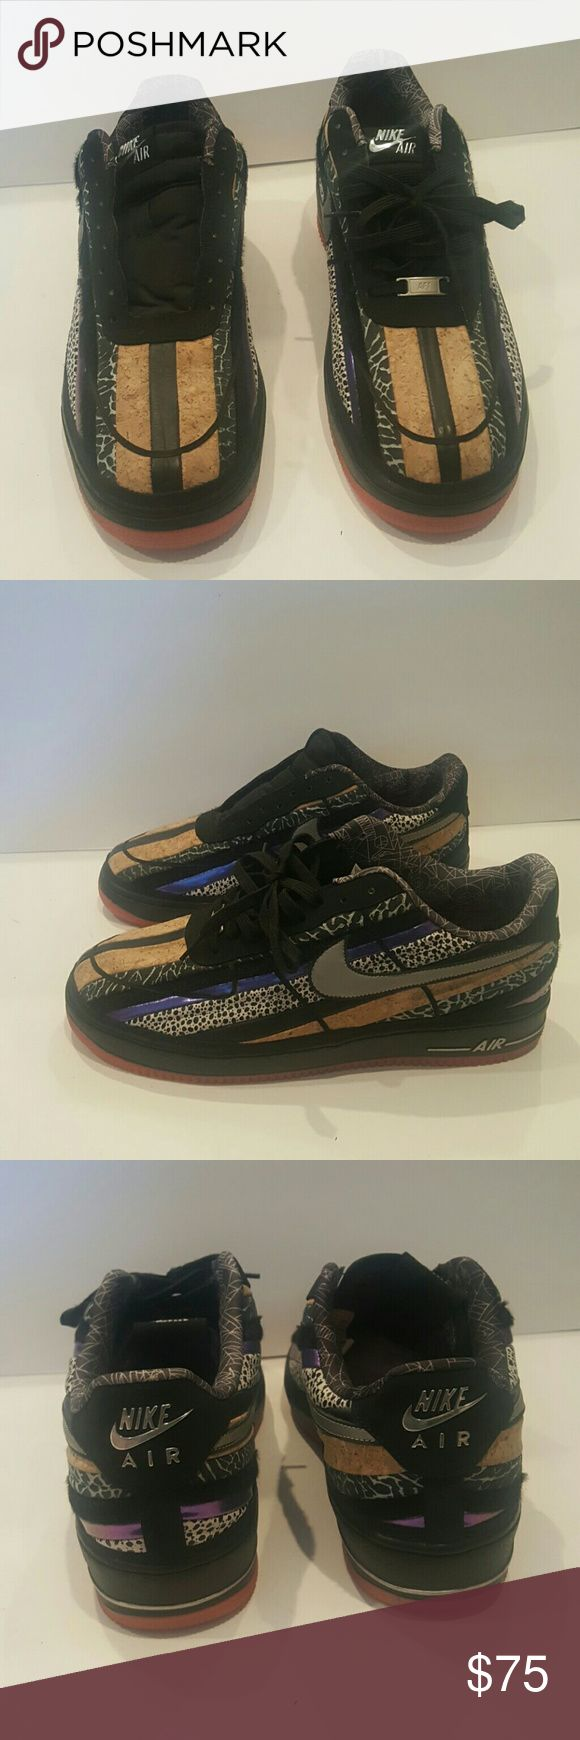 RARE NIKE LEBRON 13 AIR FORCE 1 573974-003 NIKE  AIR FORCE 1 LEBRON CORK  LEATHER.CALF HAIR LIMITED EDITION  MENS 13 WORN TWICE MISSING ONE SHOE LACE REALLY RARE PATTERN Nike Shoes Sneakers